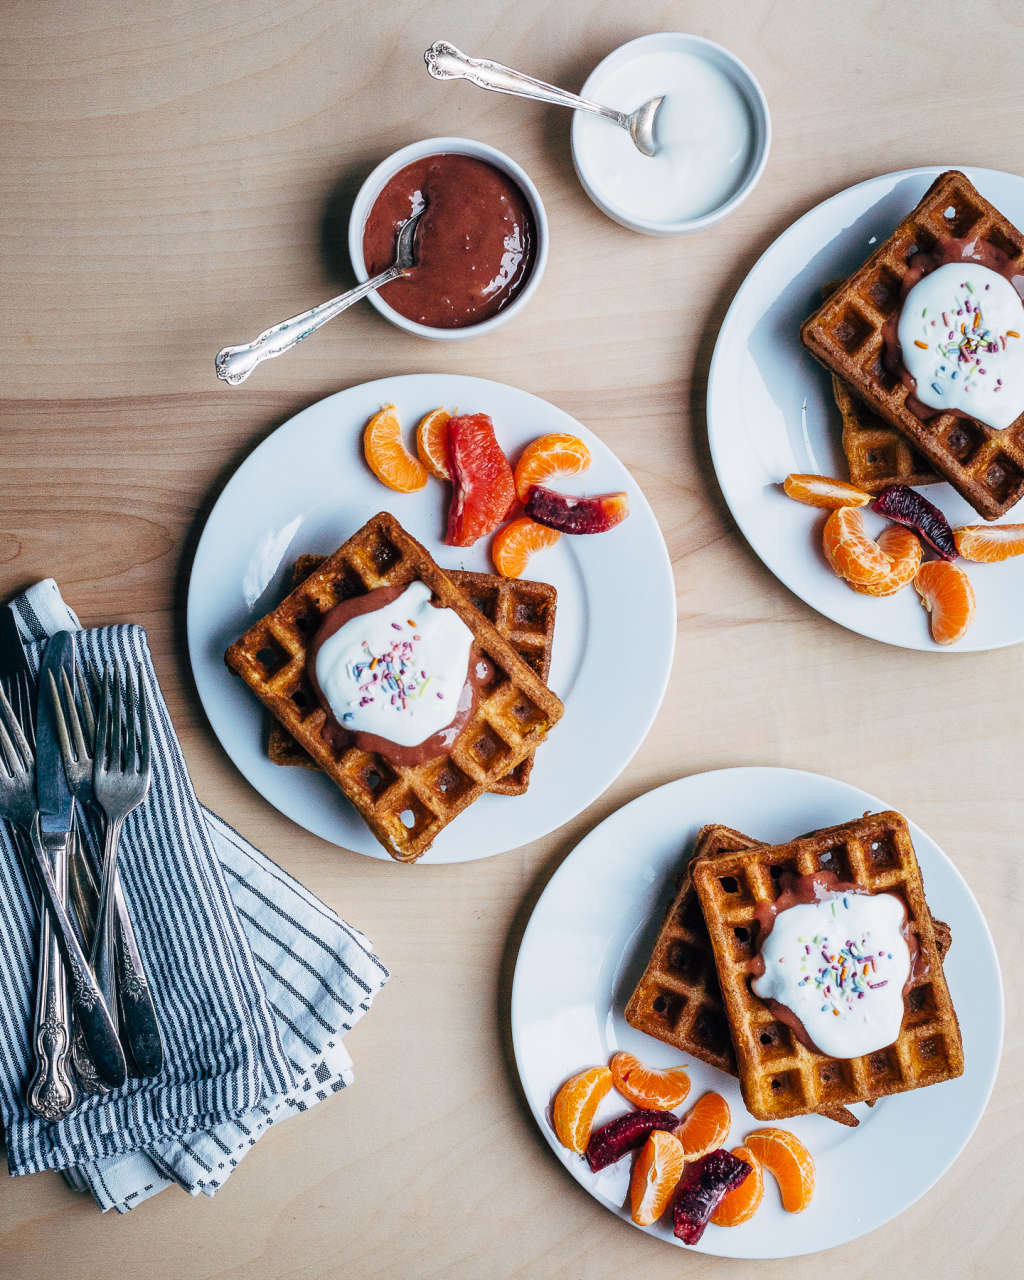 These Make-Ahead Waffles Are Great for Brunch